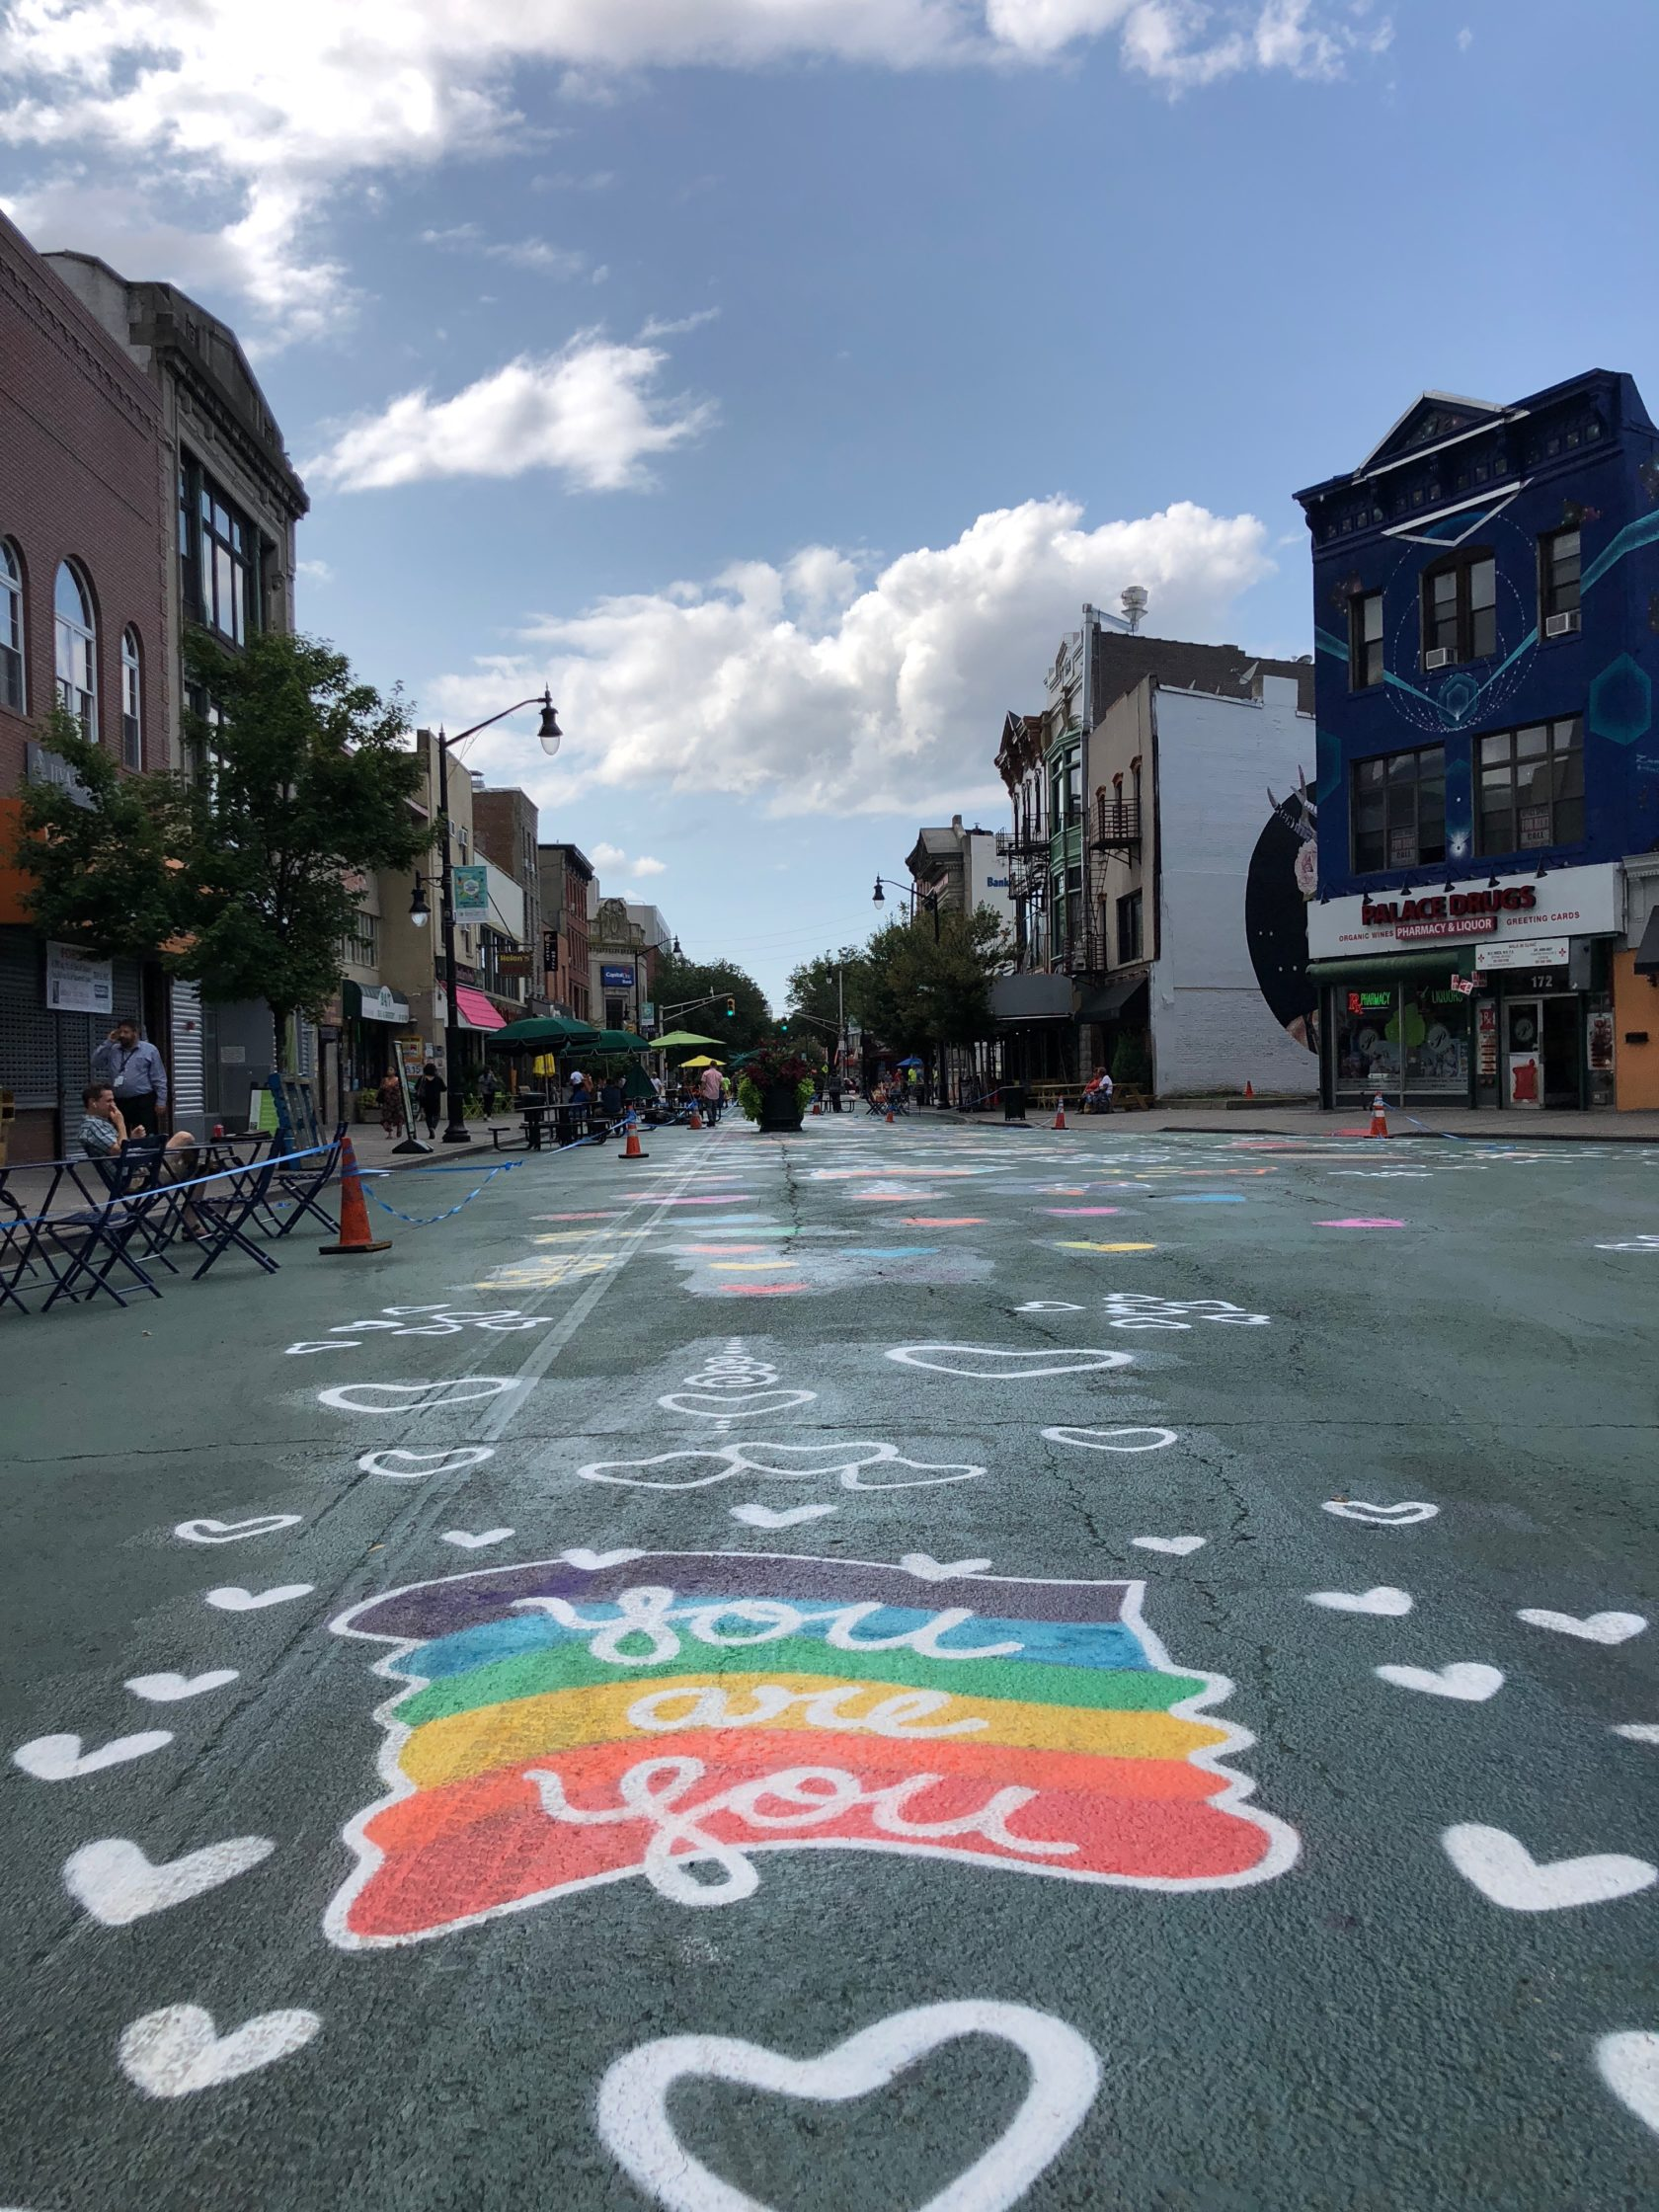 Top Ten Things to Do in Jersey City this Weekend